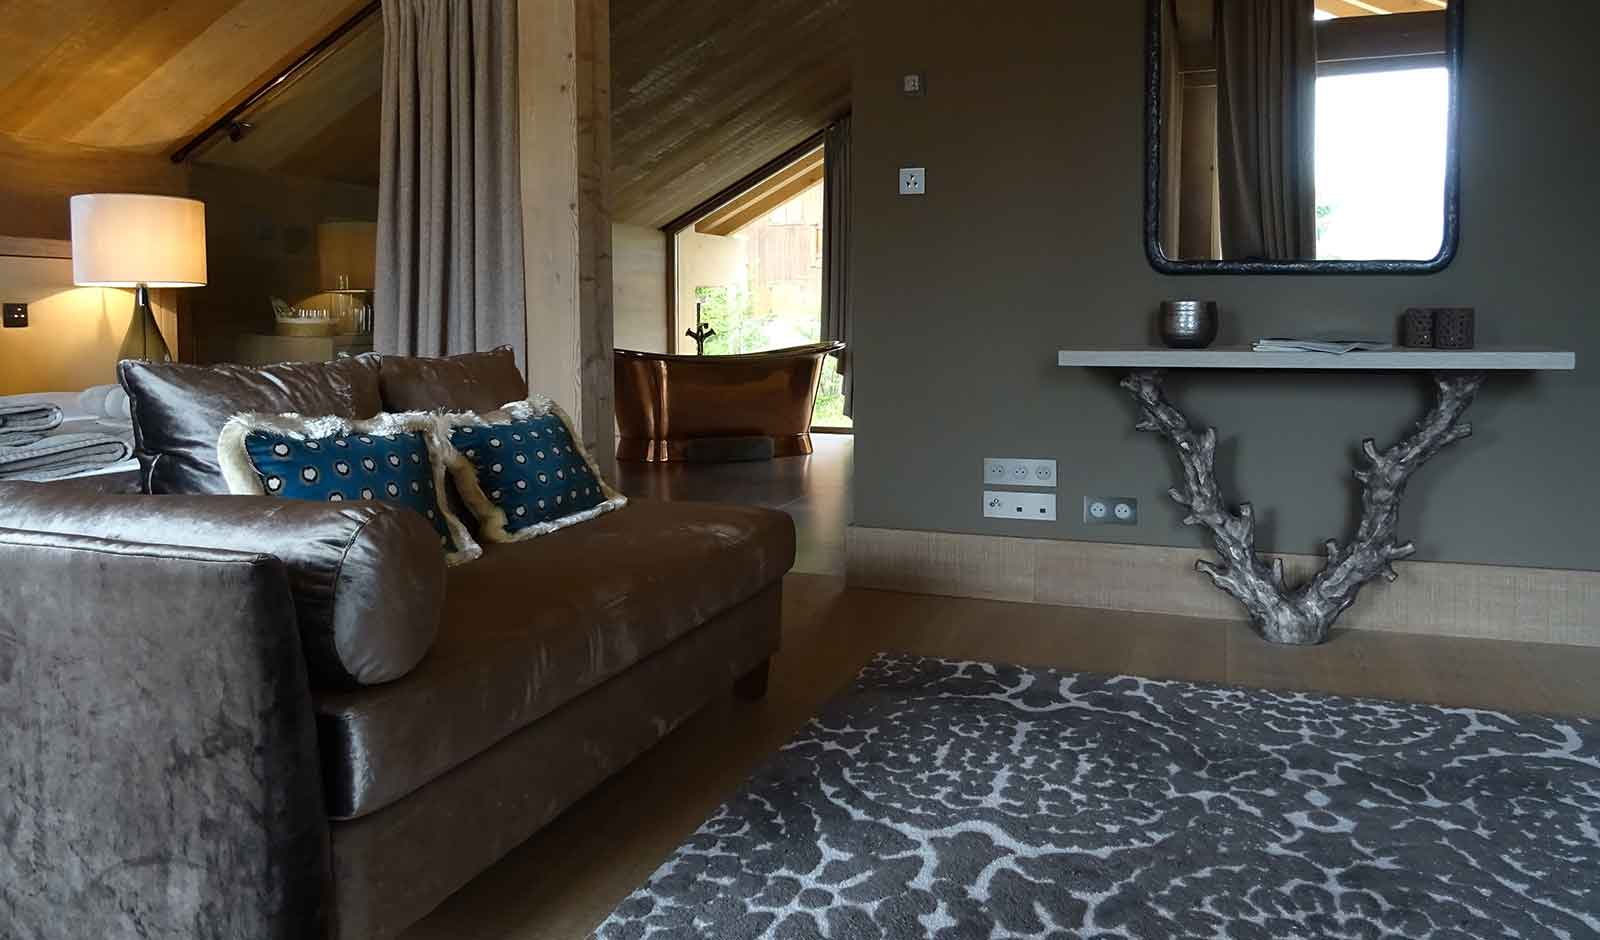 chalet-alpaca-17-atelier-crea-and-co-architecte-design-project-manager-meribel-savoie